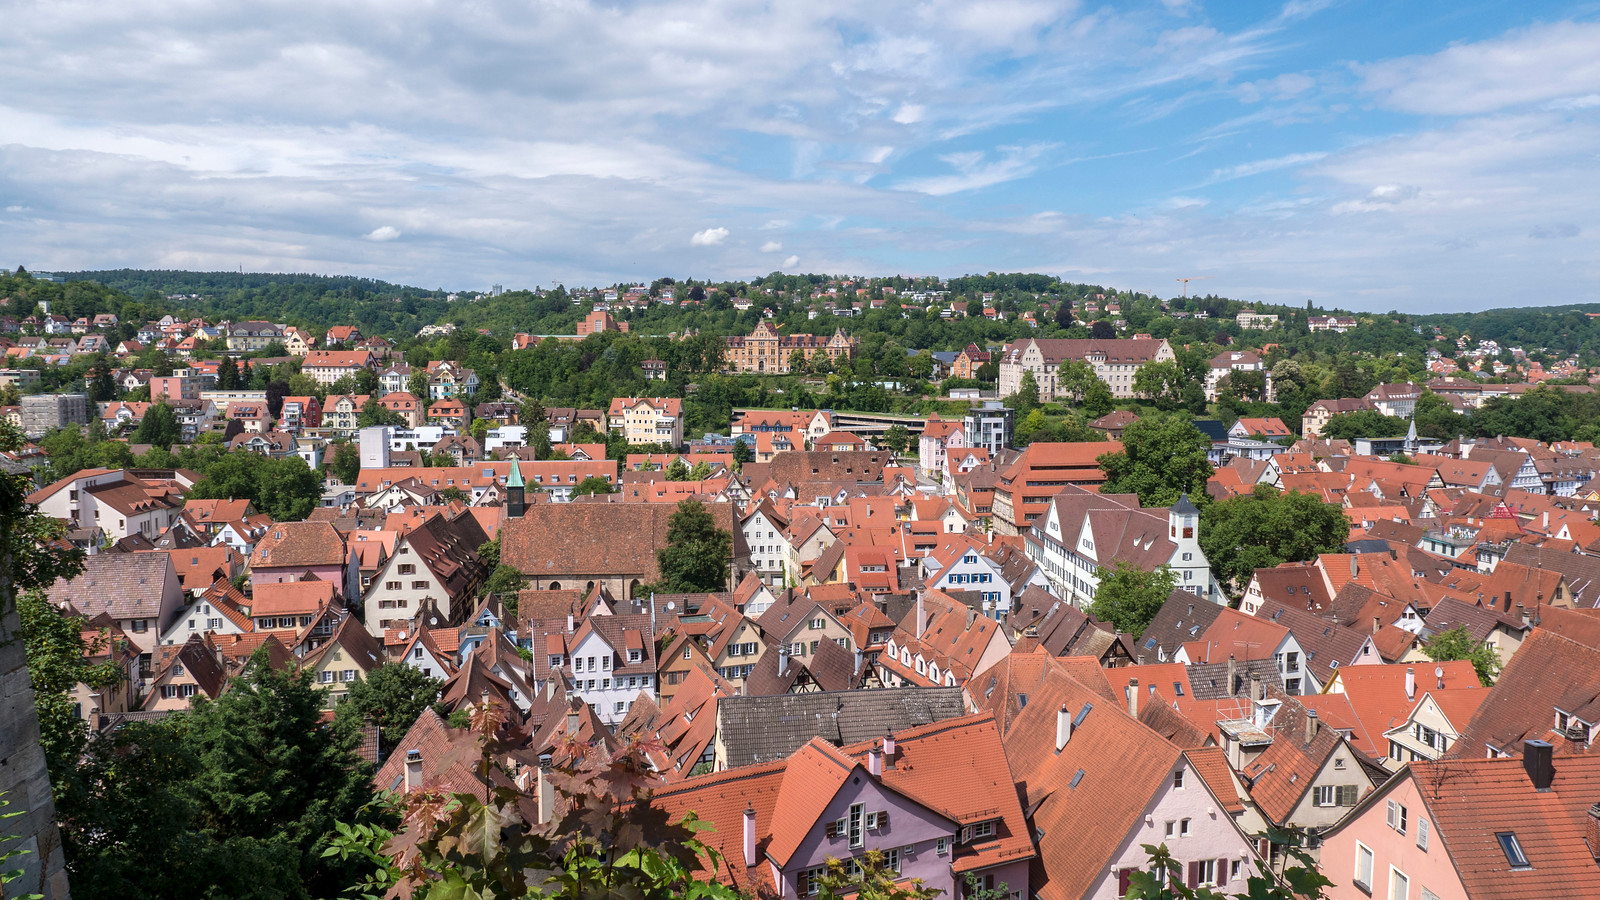 Views from the castle grounds in Tubingen. Things to do in Tubingen Germany.